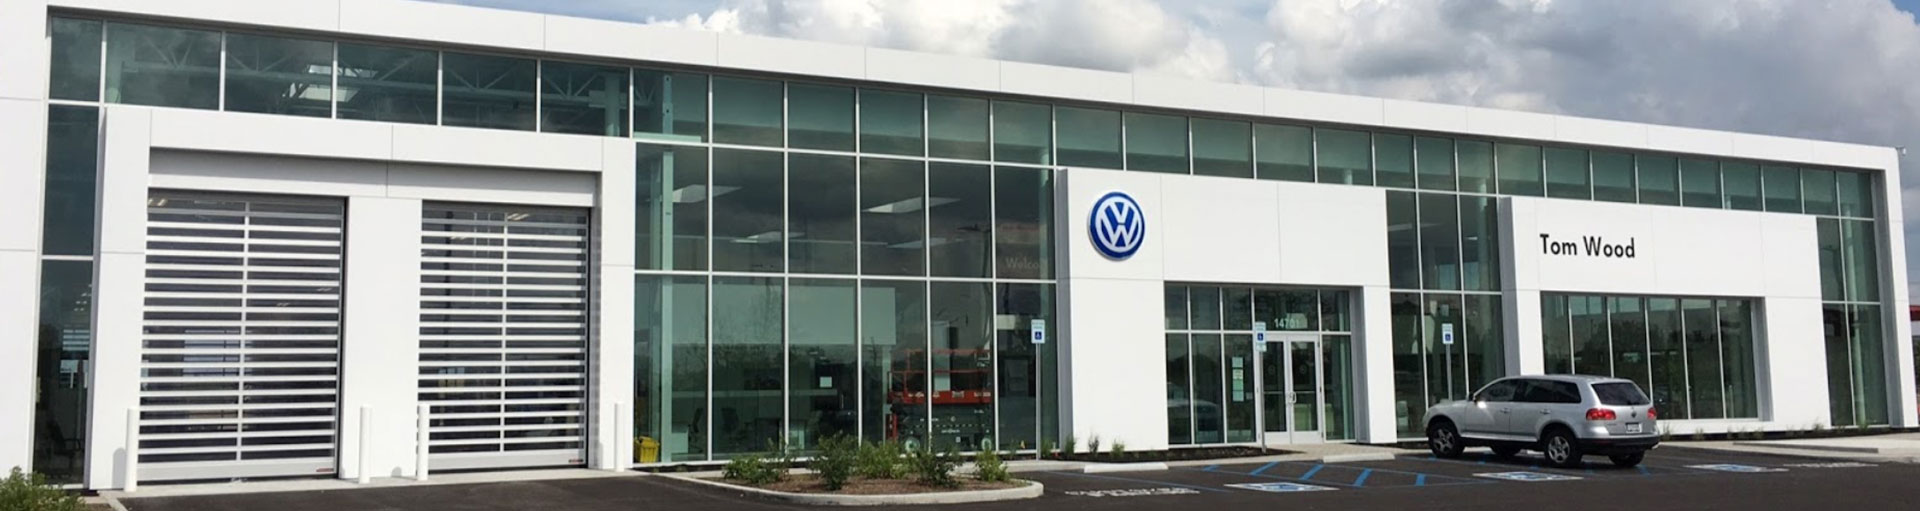 Tom Wood Volkswagen Noblesville